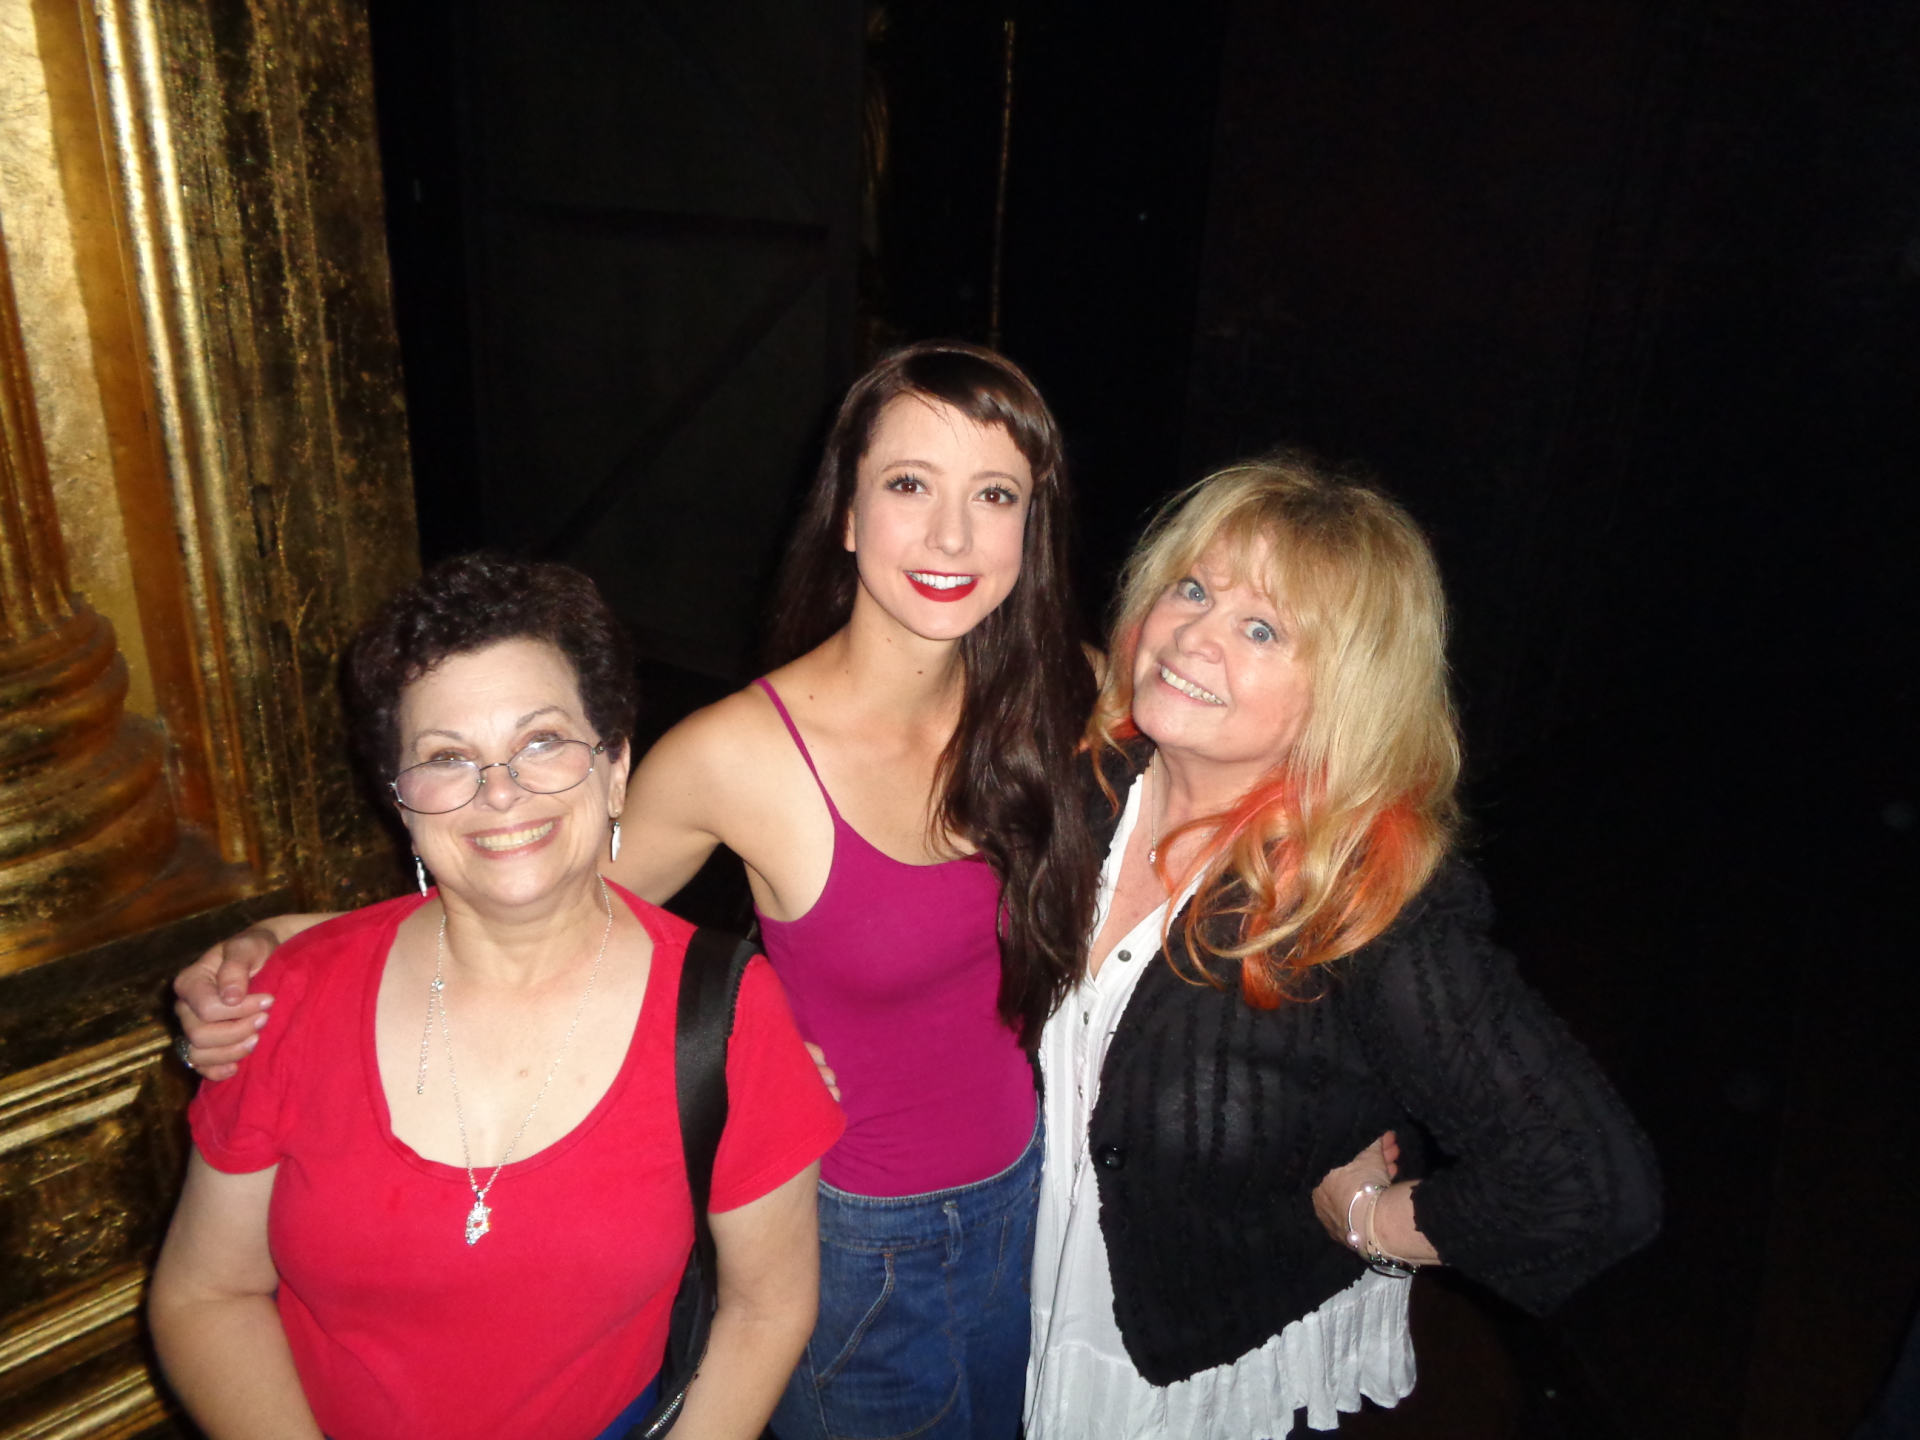 Katie Travis (Christine) with two fans, on the left Madame Half Mask (wearing her half mask pendent), and on the right, TV and stage star Sally Struthers.